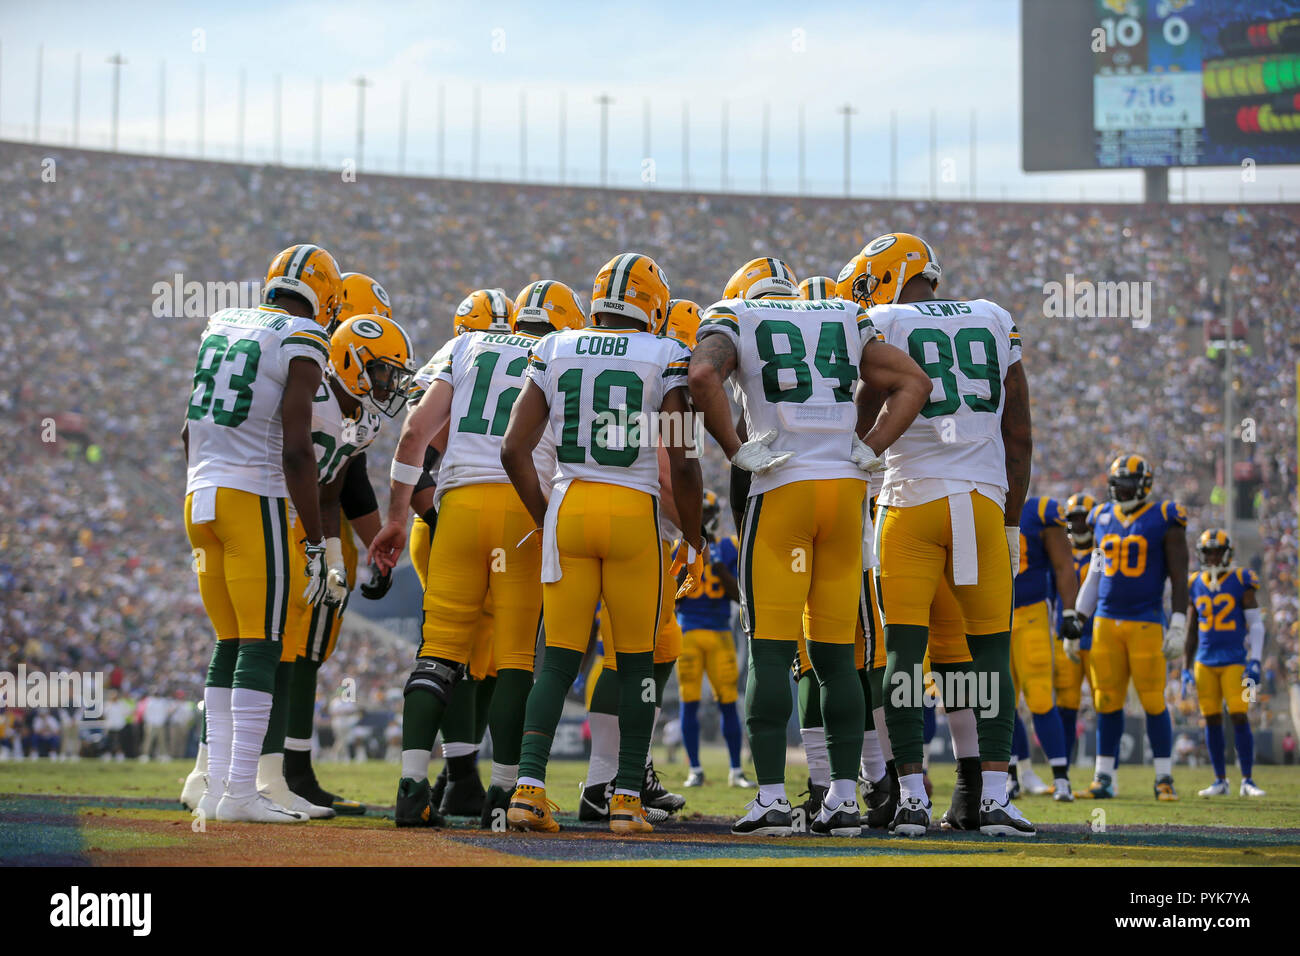 Los Angeles Ca Usa 28th Oct 2018 Green Bay Packers Offensive Huddle During The Nfl Green